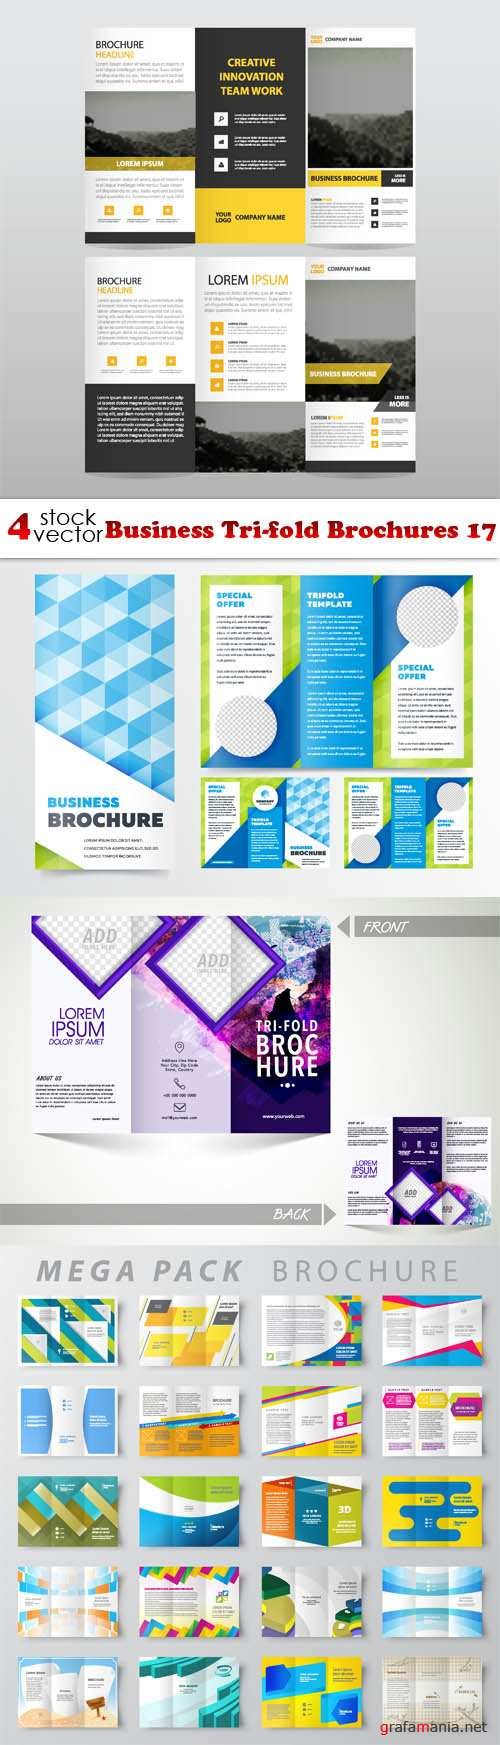 Vectors - Business Tri-fold Brochures 17